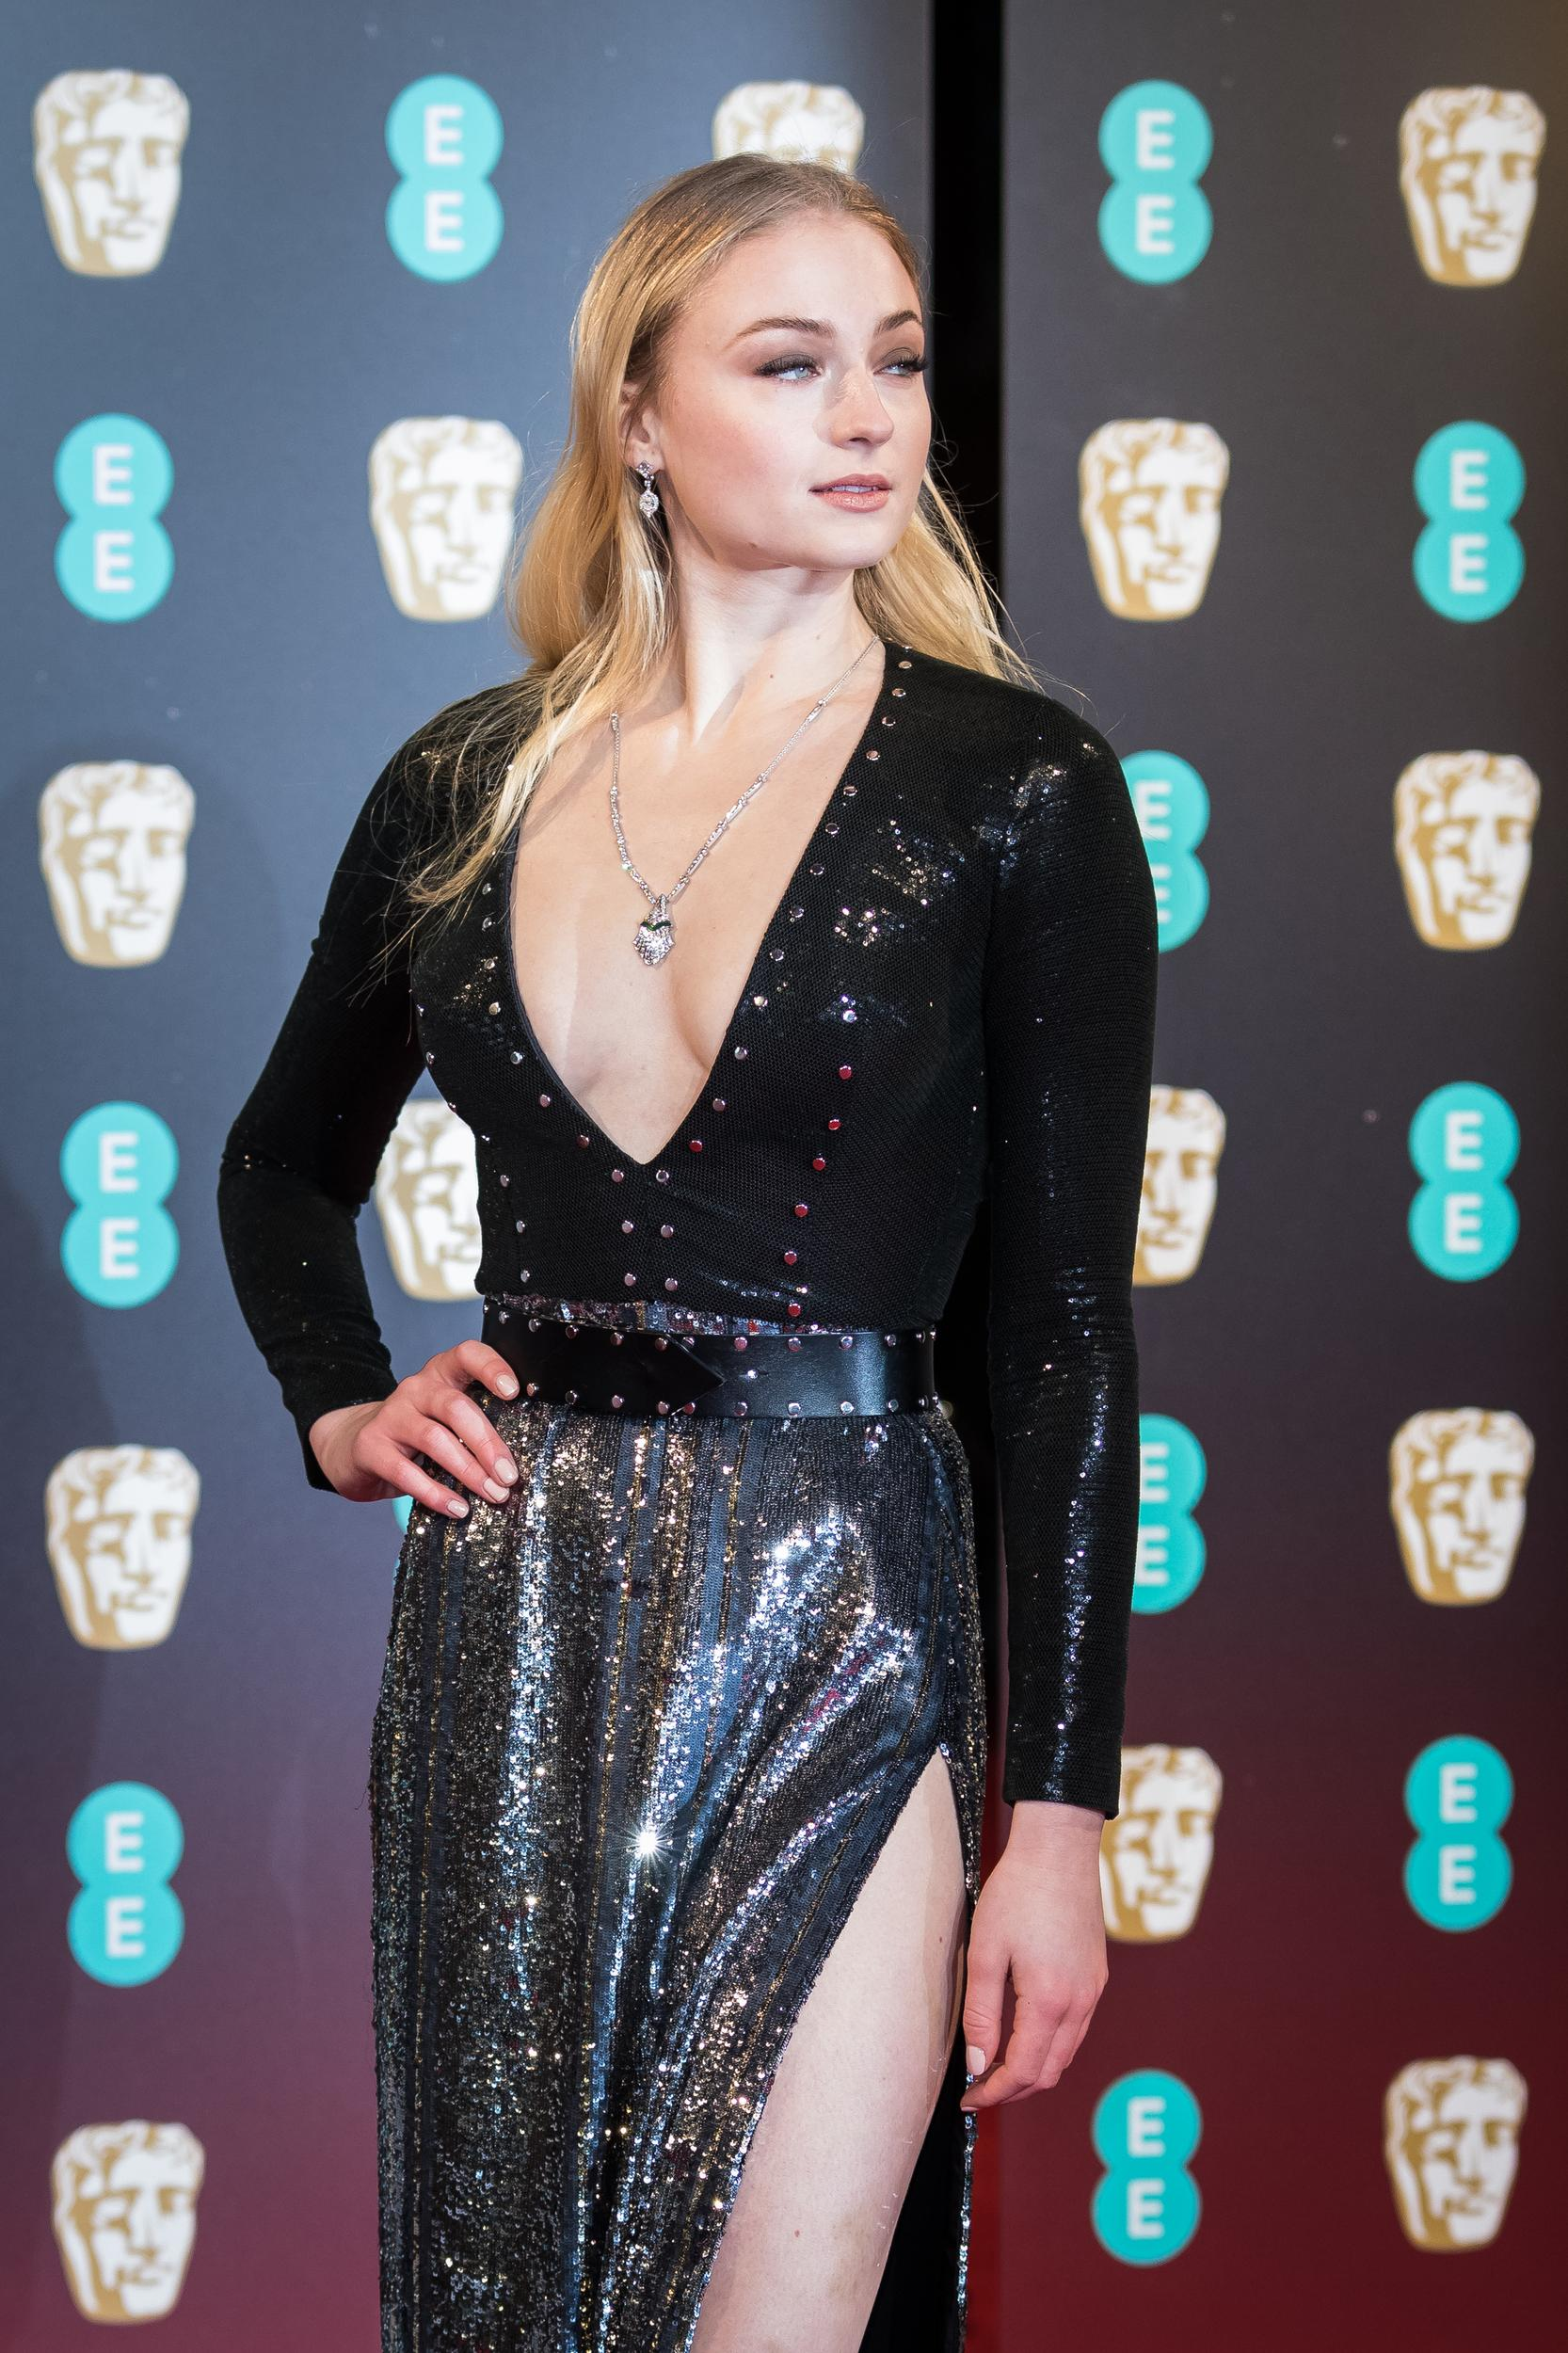 Sophie Turner poses for photographers upon arrival at the BAFTA Film Awards, in London, Sunday, Feb. 12, 2017. (Photo by Vianney Le Caer/Invision/AP)